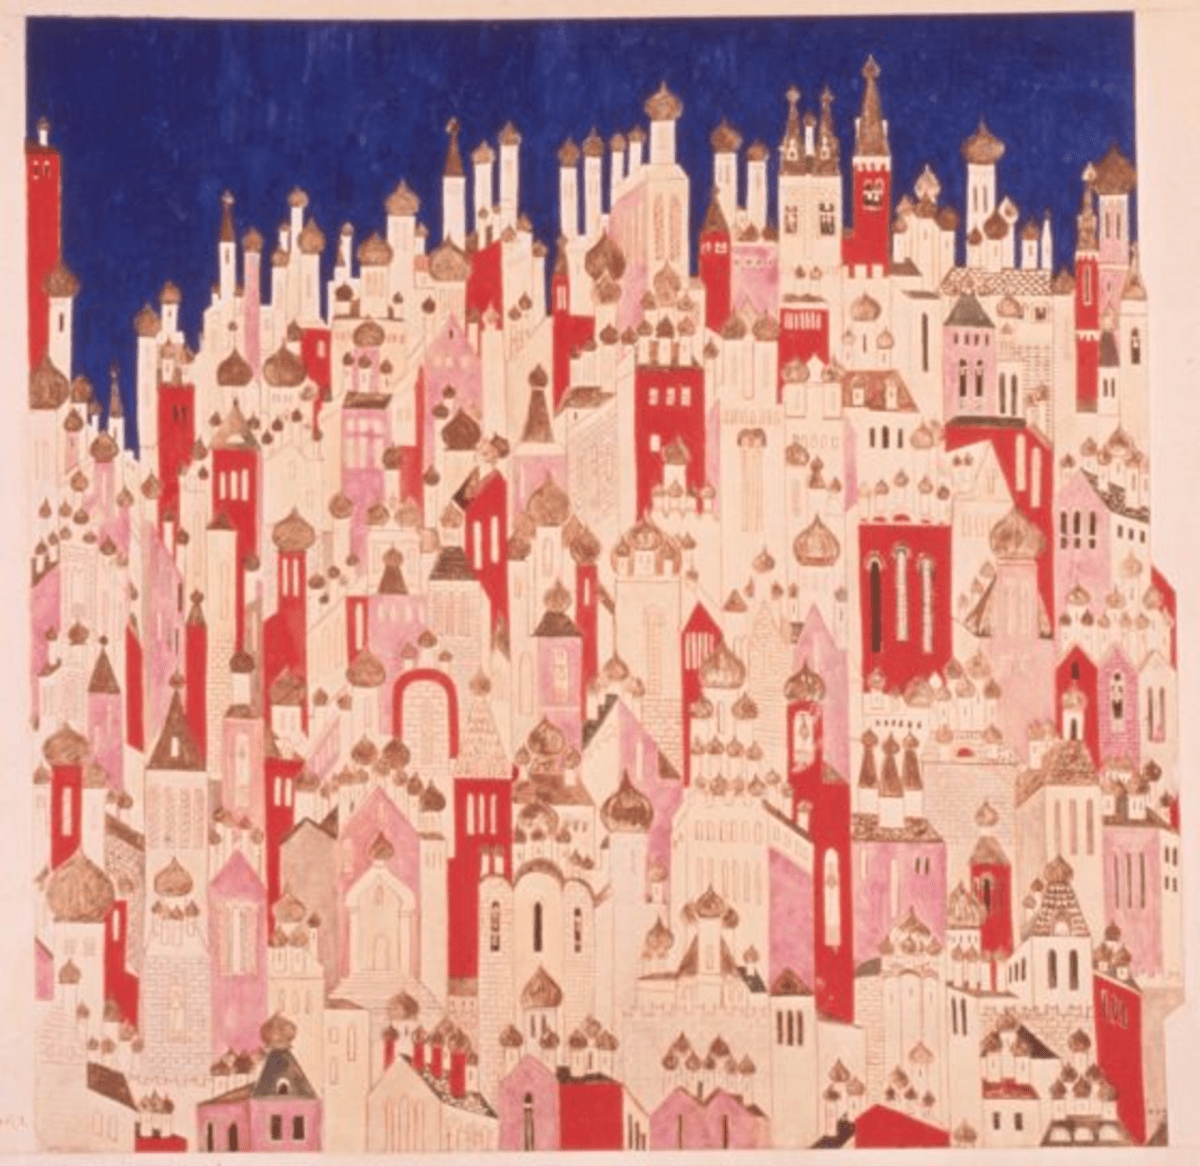 File Name: 3413-056.jpg Natalia Goncharova Design for the back cloth for the final Coronation scene from The Firebird, 1926 watercolor, gouache, gold and silver on card framed: 90 x 90 cm (35 7/16 x 35 7/16 in.) V&A, London